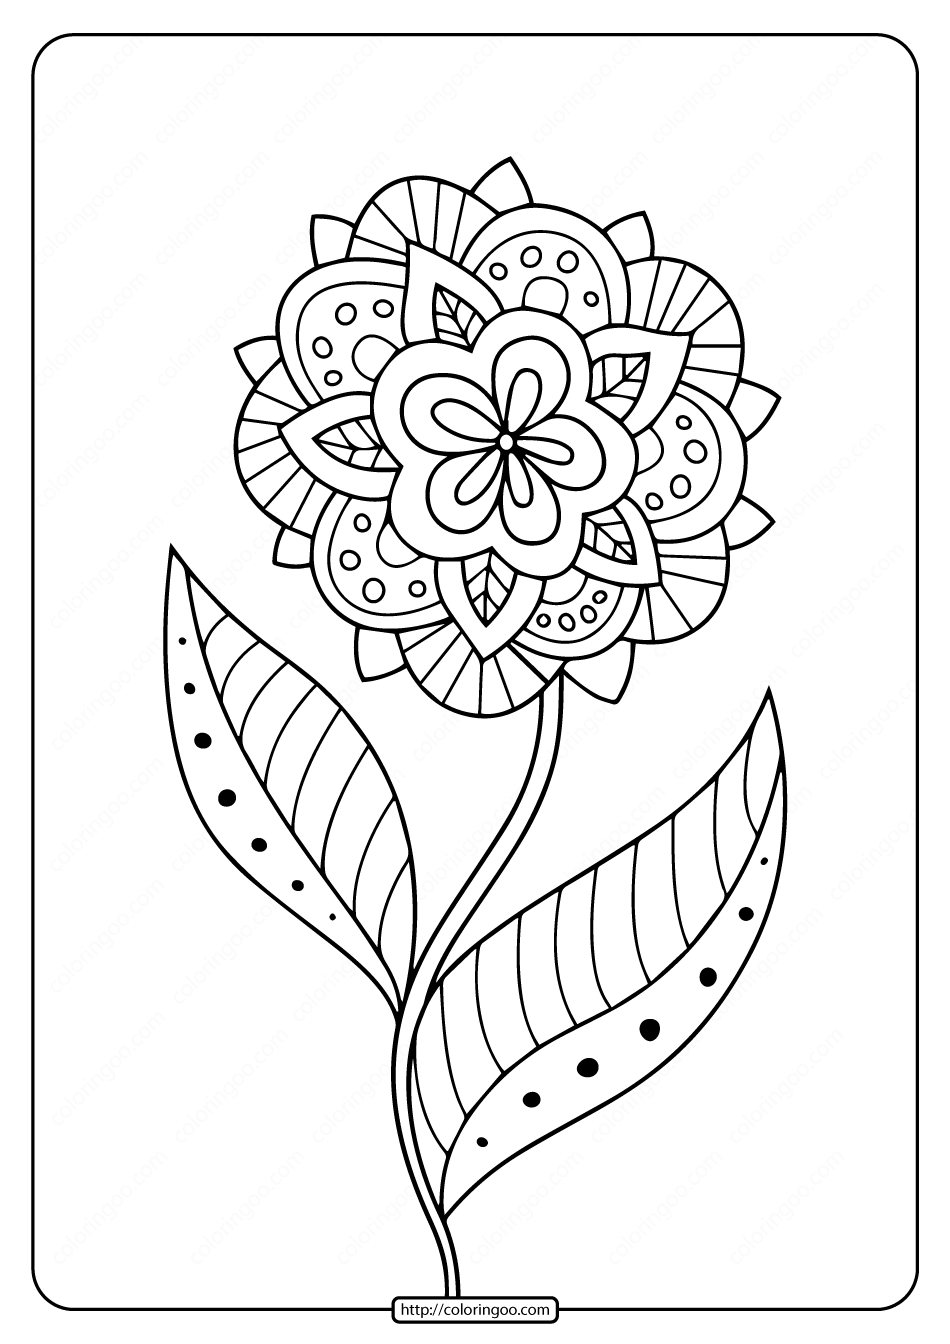 free coloring pages mandala free mandala coloring page designed for you to color free pages coloring mandala